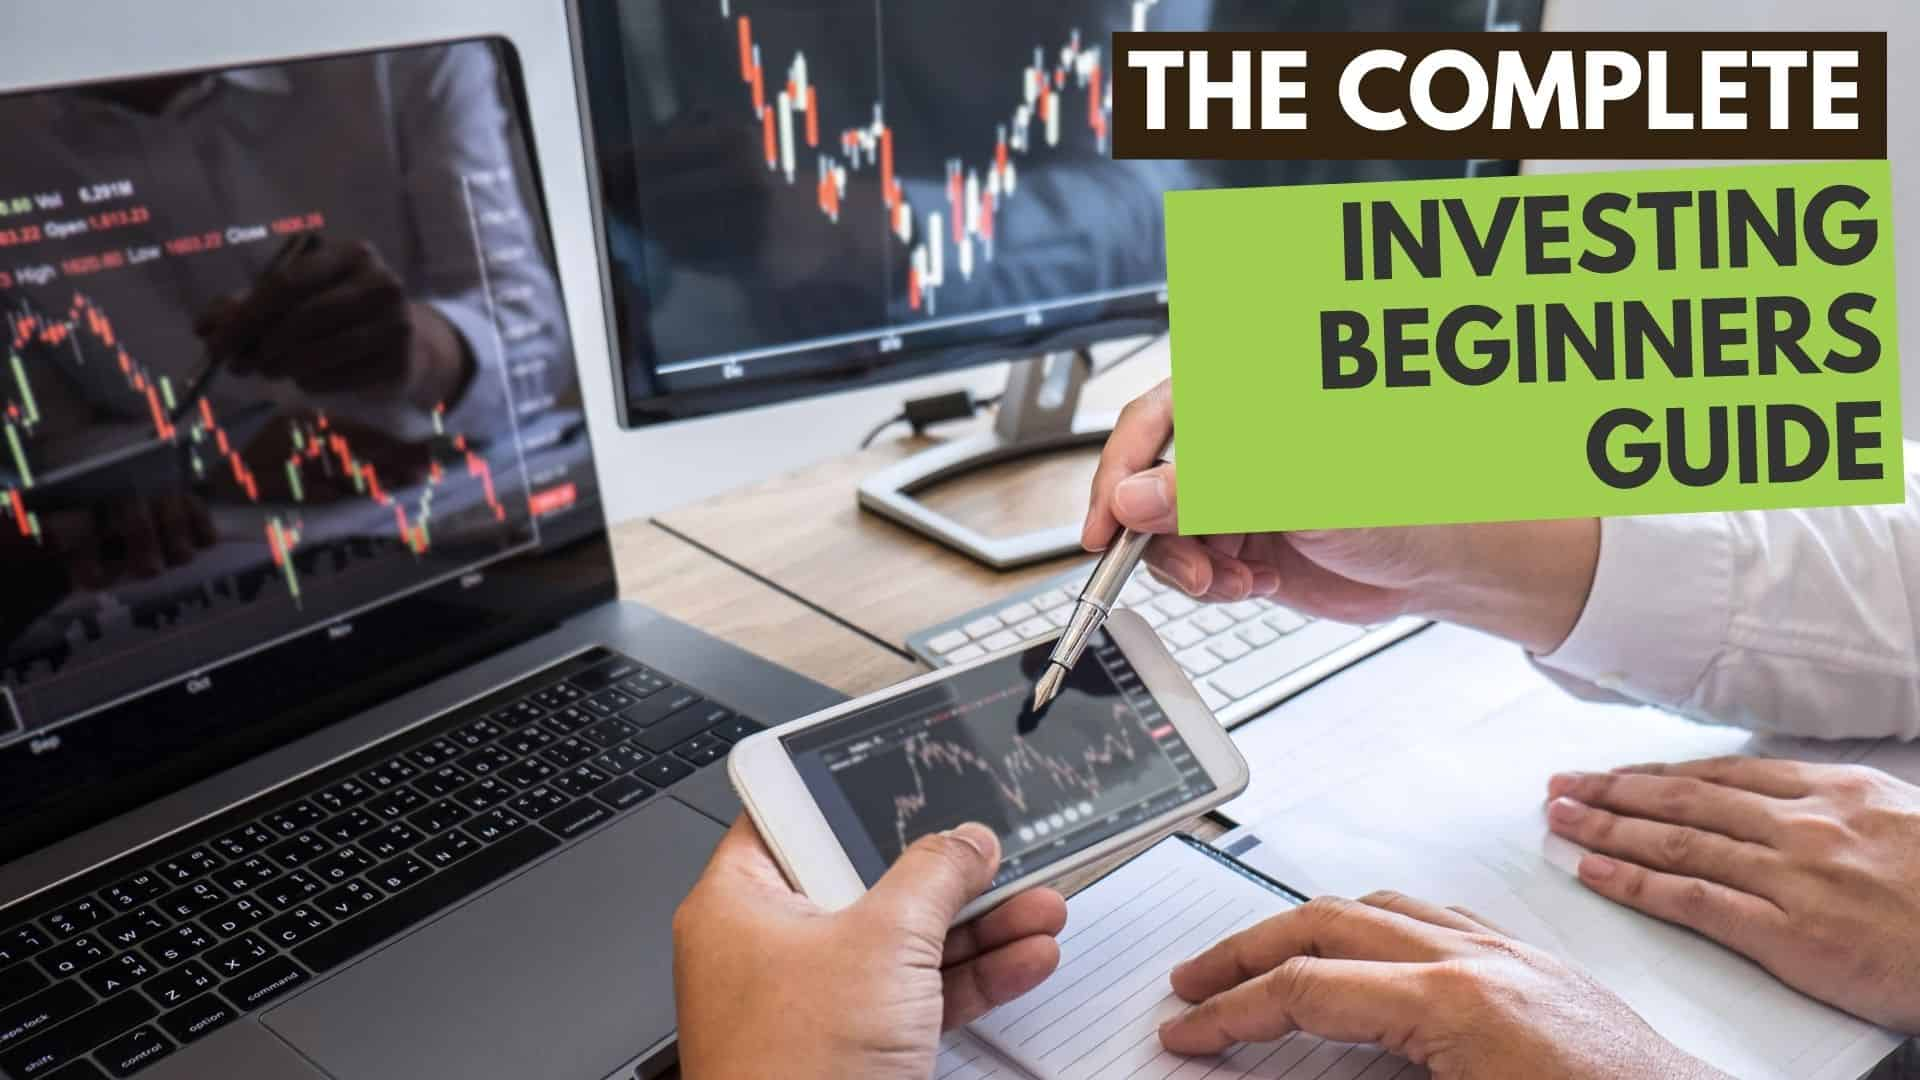 The Complete Investing Beginners Guide